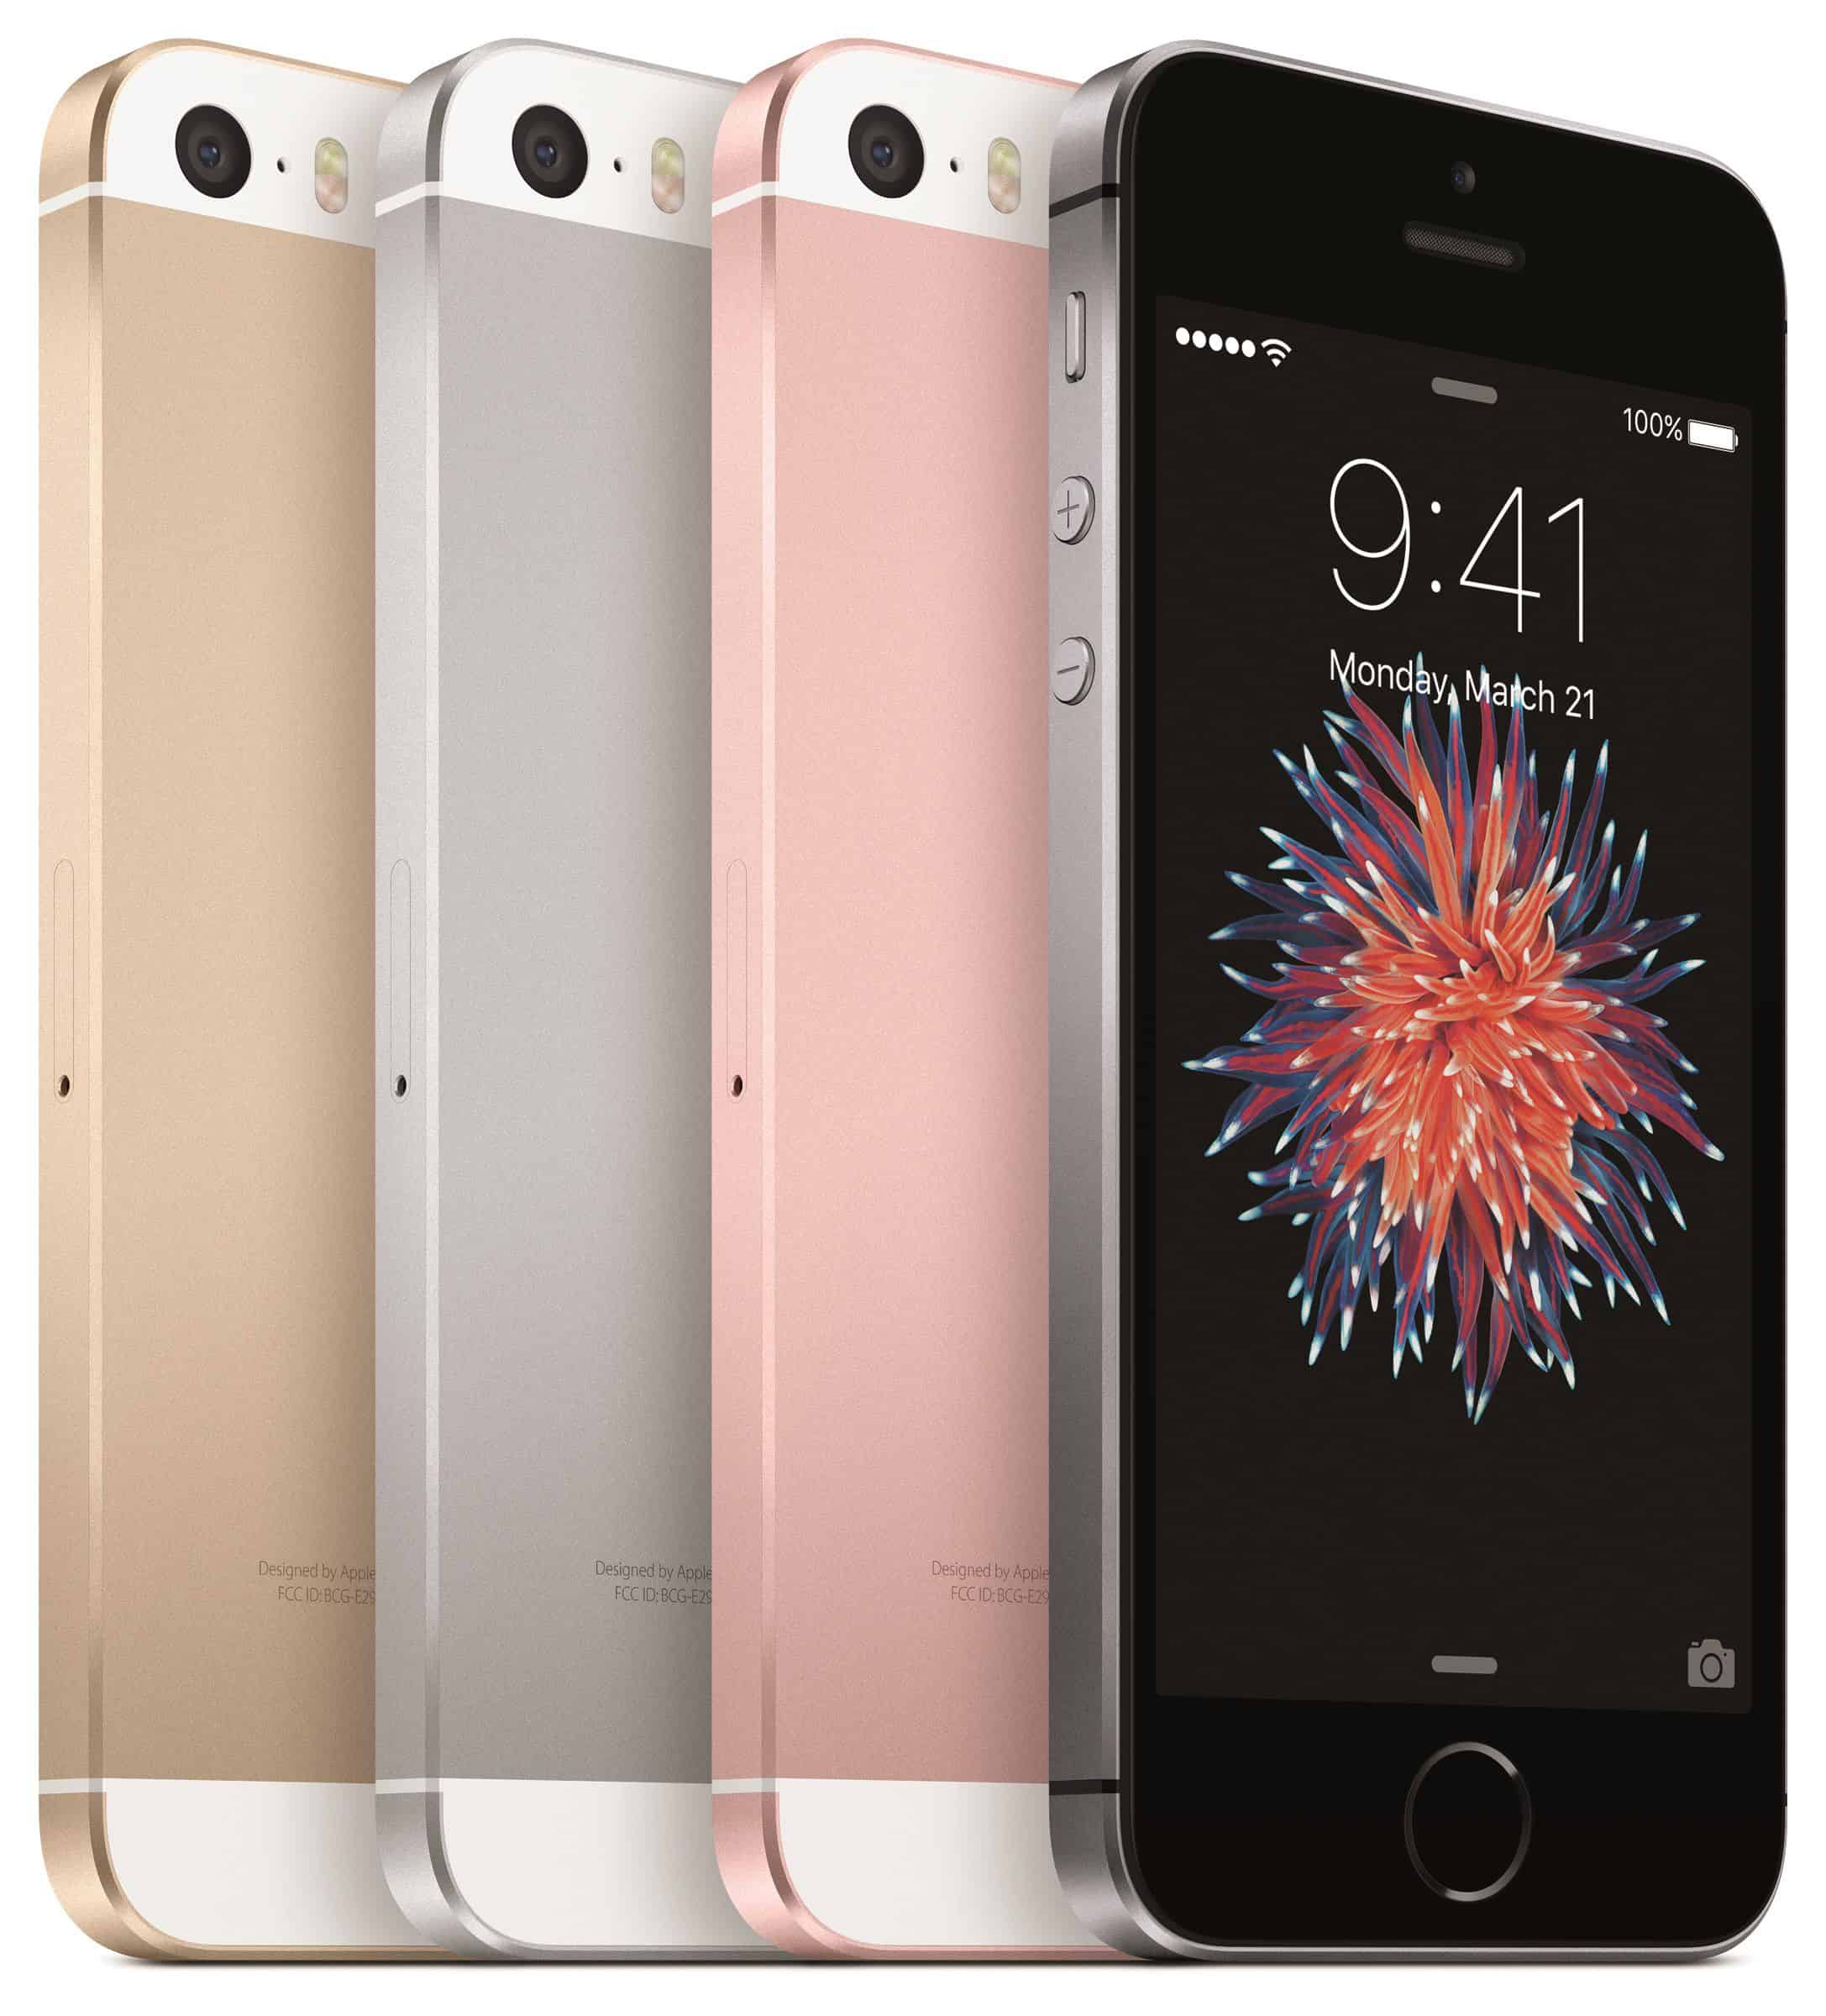 iPhone SE: Is the New iPhone Worth Buying in India? - 2